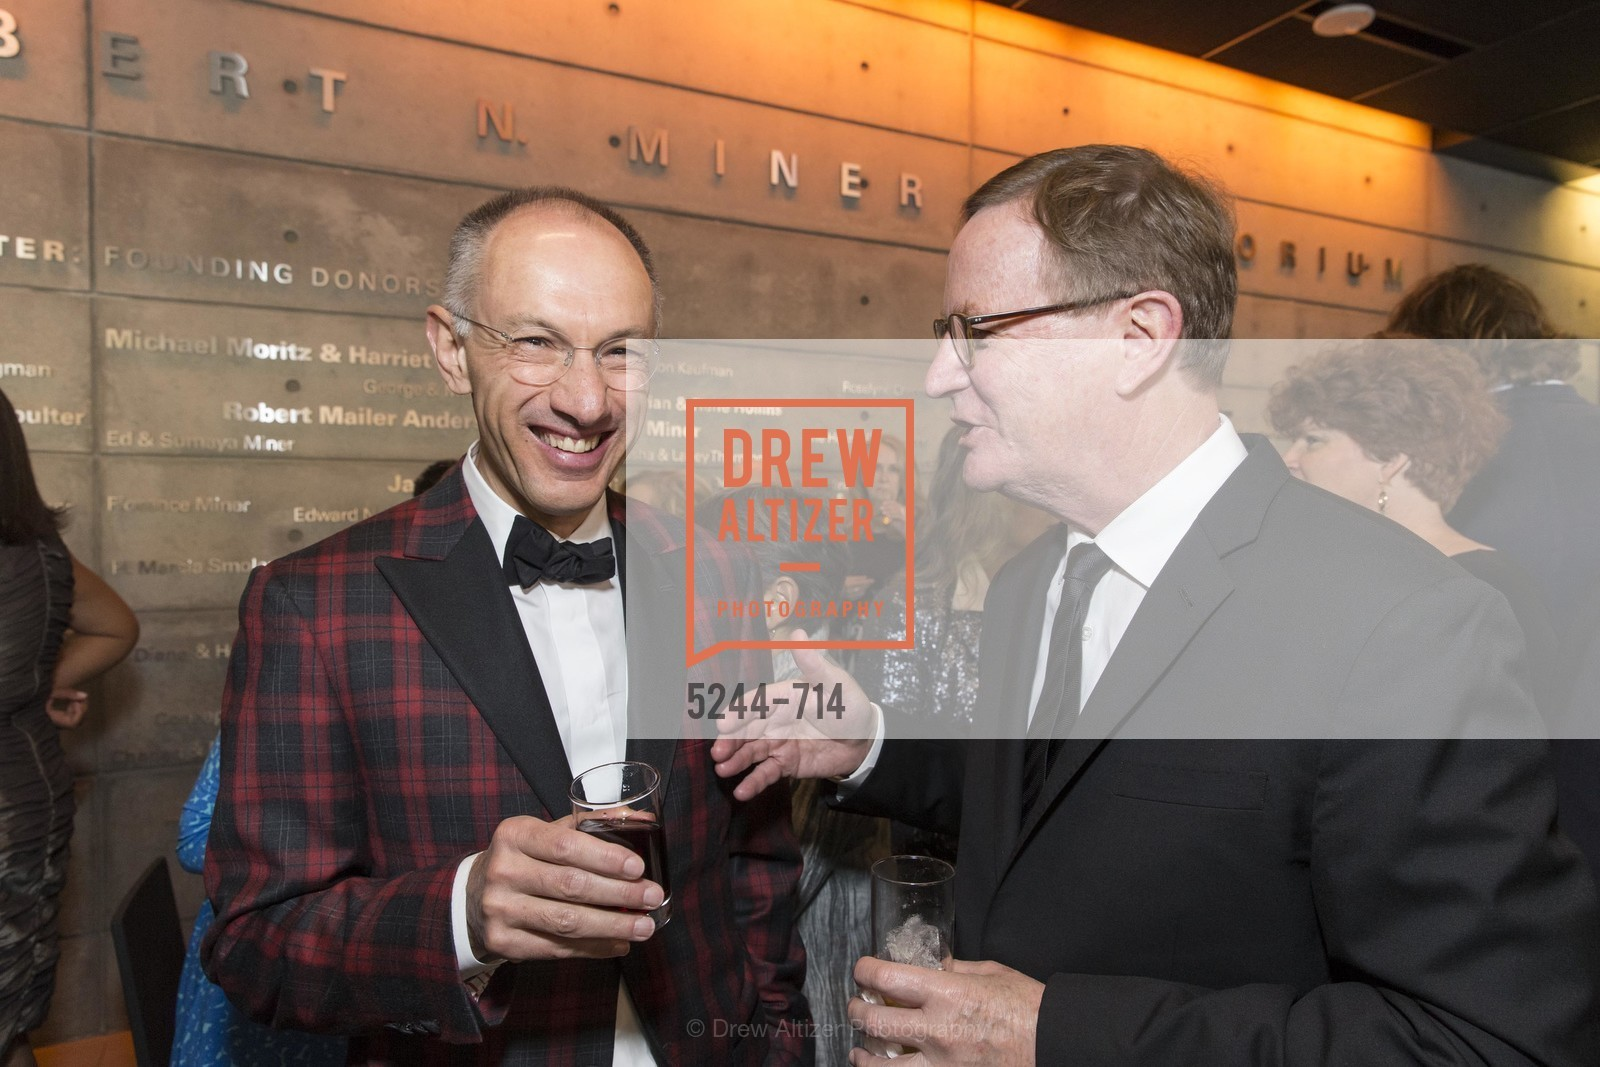 Michael Moritz, Sam Hawgood, SFJAZZ Gala 2015 Honors Joni Mitchell with Lifetime Achievement Award, US, May 9th, 2015,Drew Altizer, Drew Altizer Photography, full-service agency, private events, San Francisco photographer, photographer california